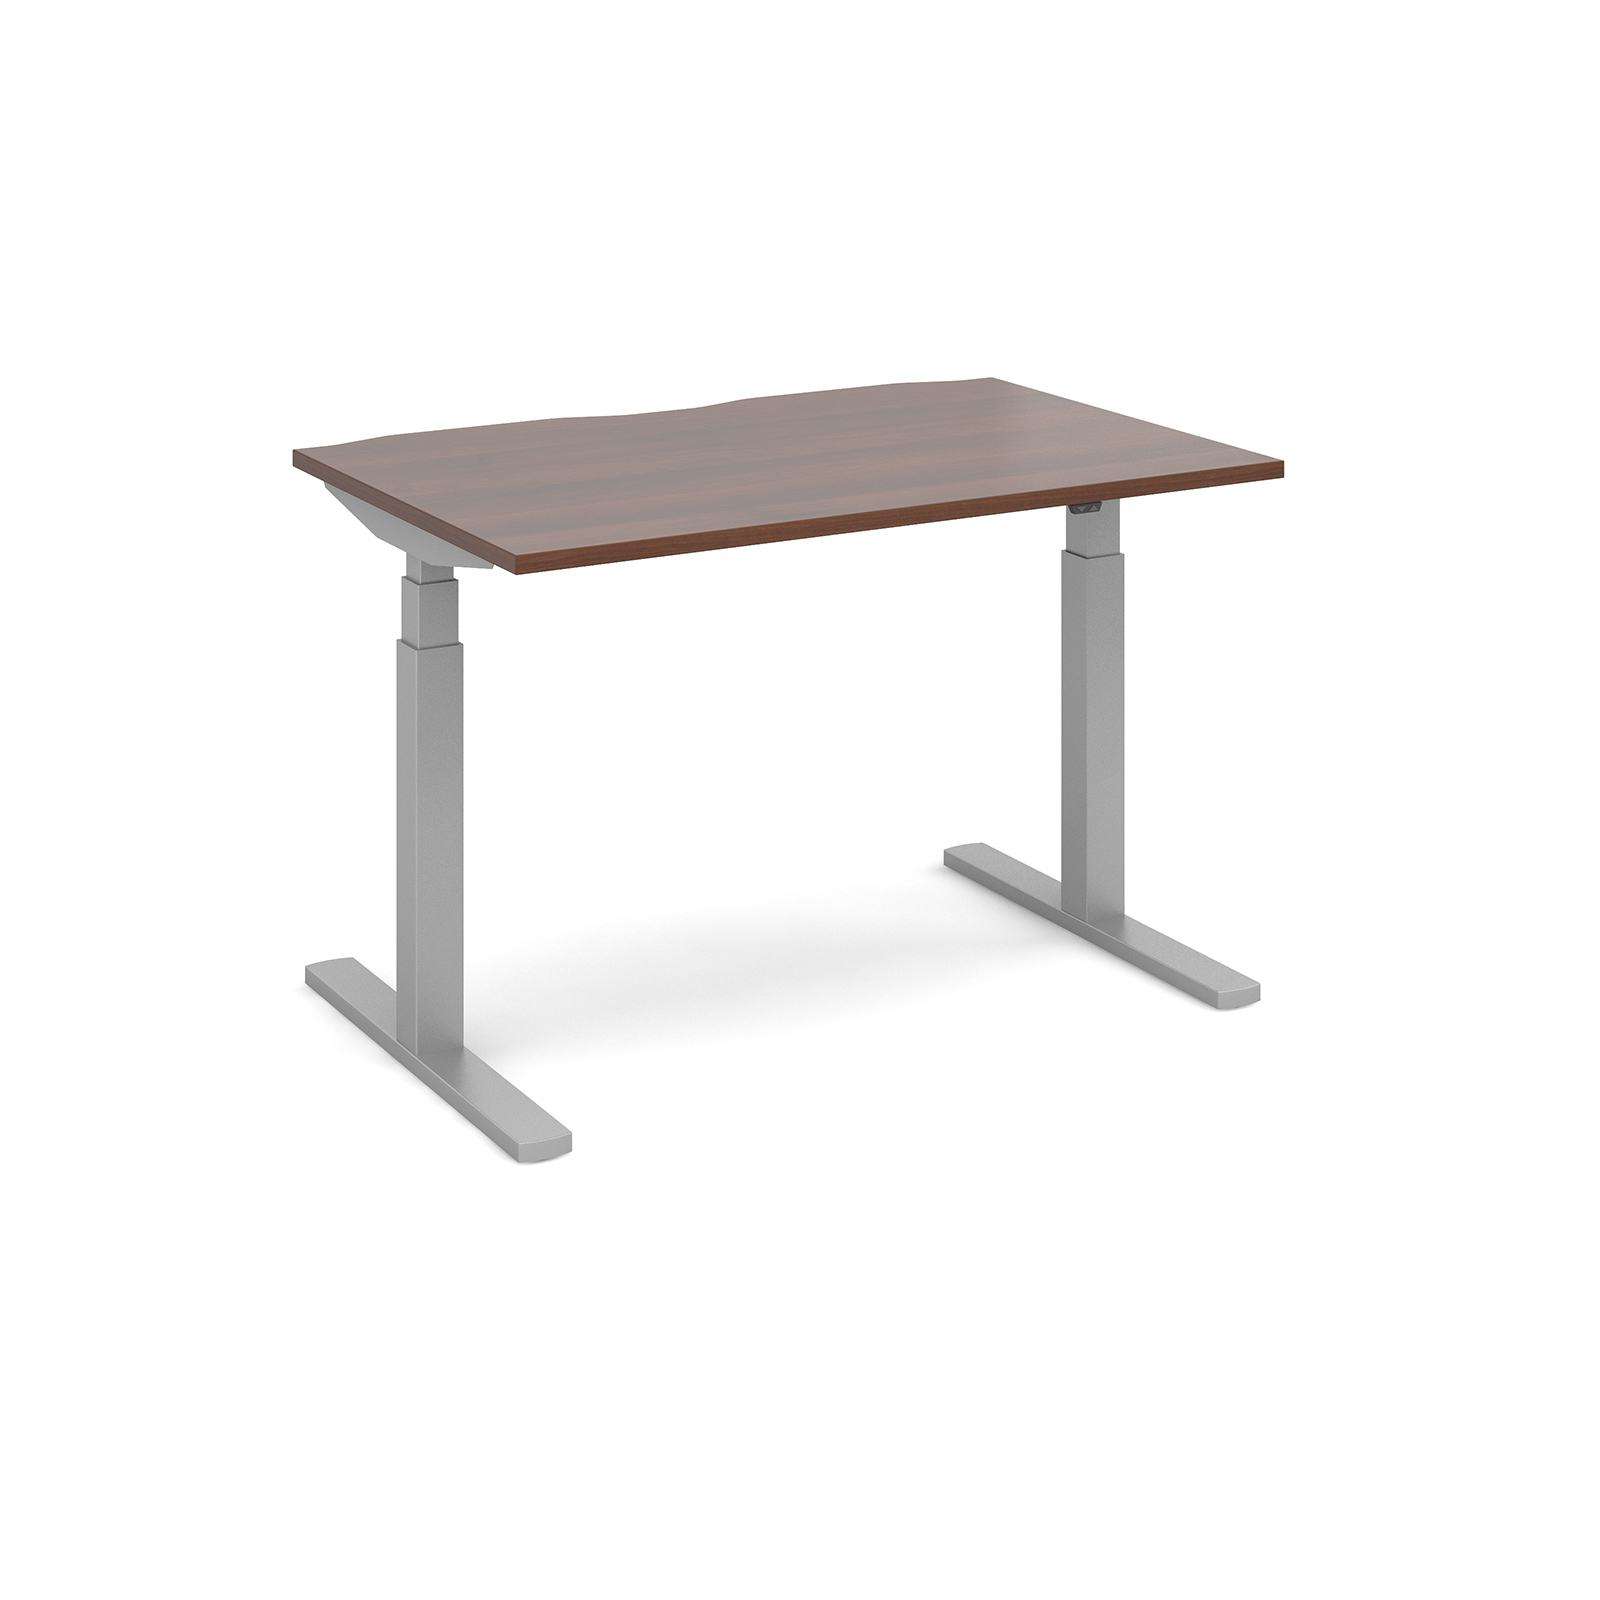 Elev8 Touch Straight Sit-Stand Desk 1200mm x 800mm - Silver Frame, Walnut Top